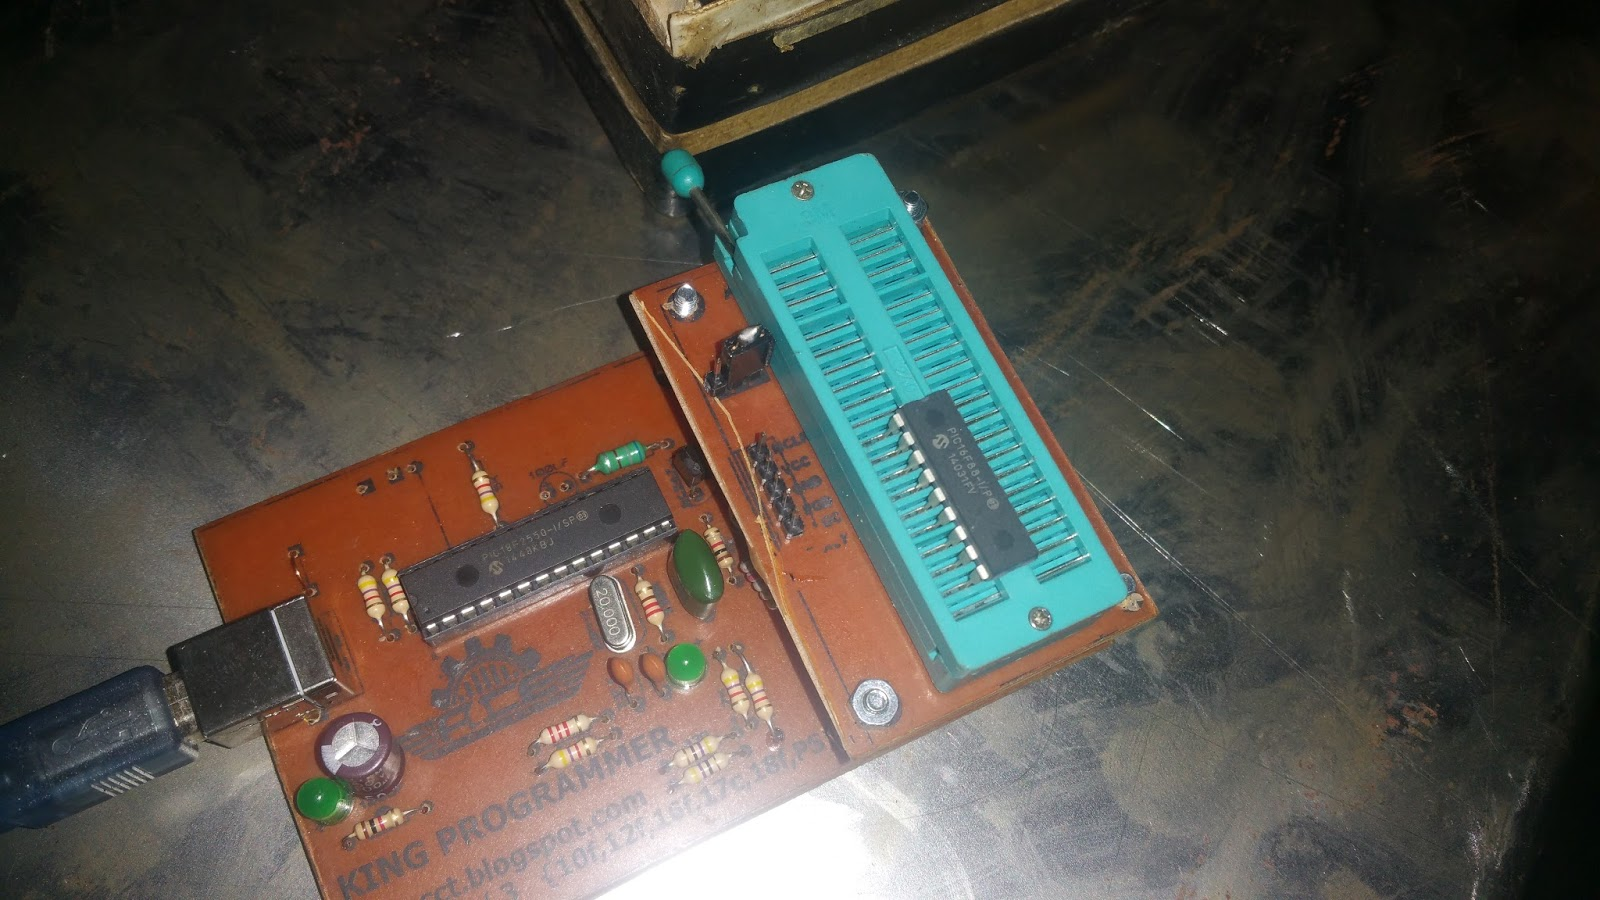 Acesolutions Pickit 2 Clone Programmer 1 Circuit Diagram Fig6 18 Pin Uc Configration